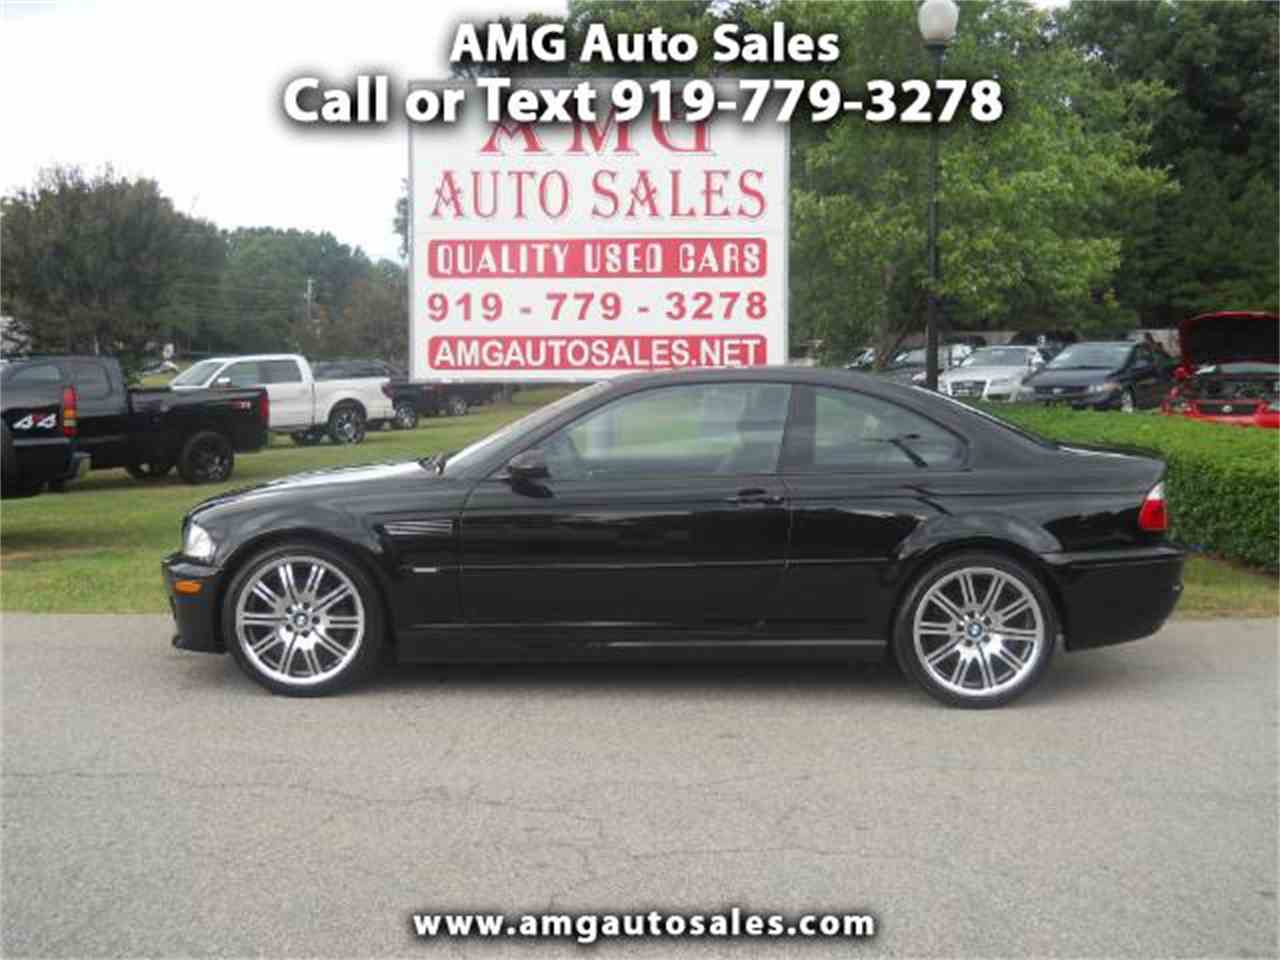 near classic georgia for marietta convertible sale cars modern bmw car